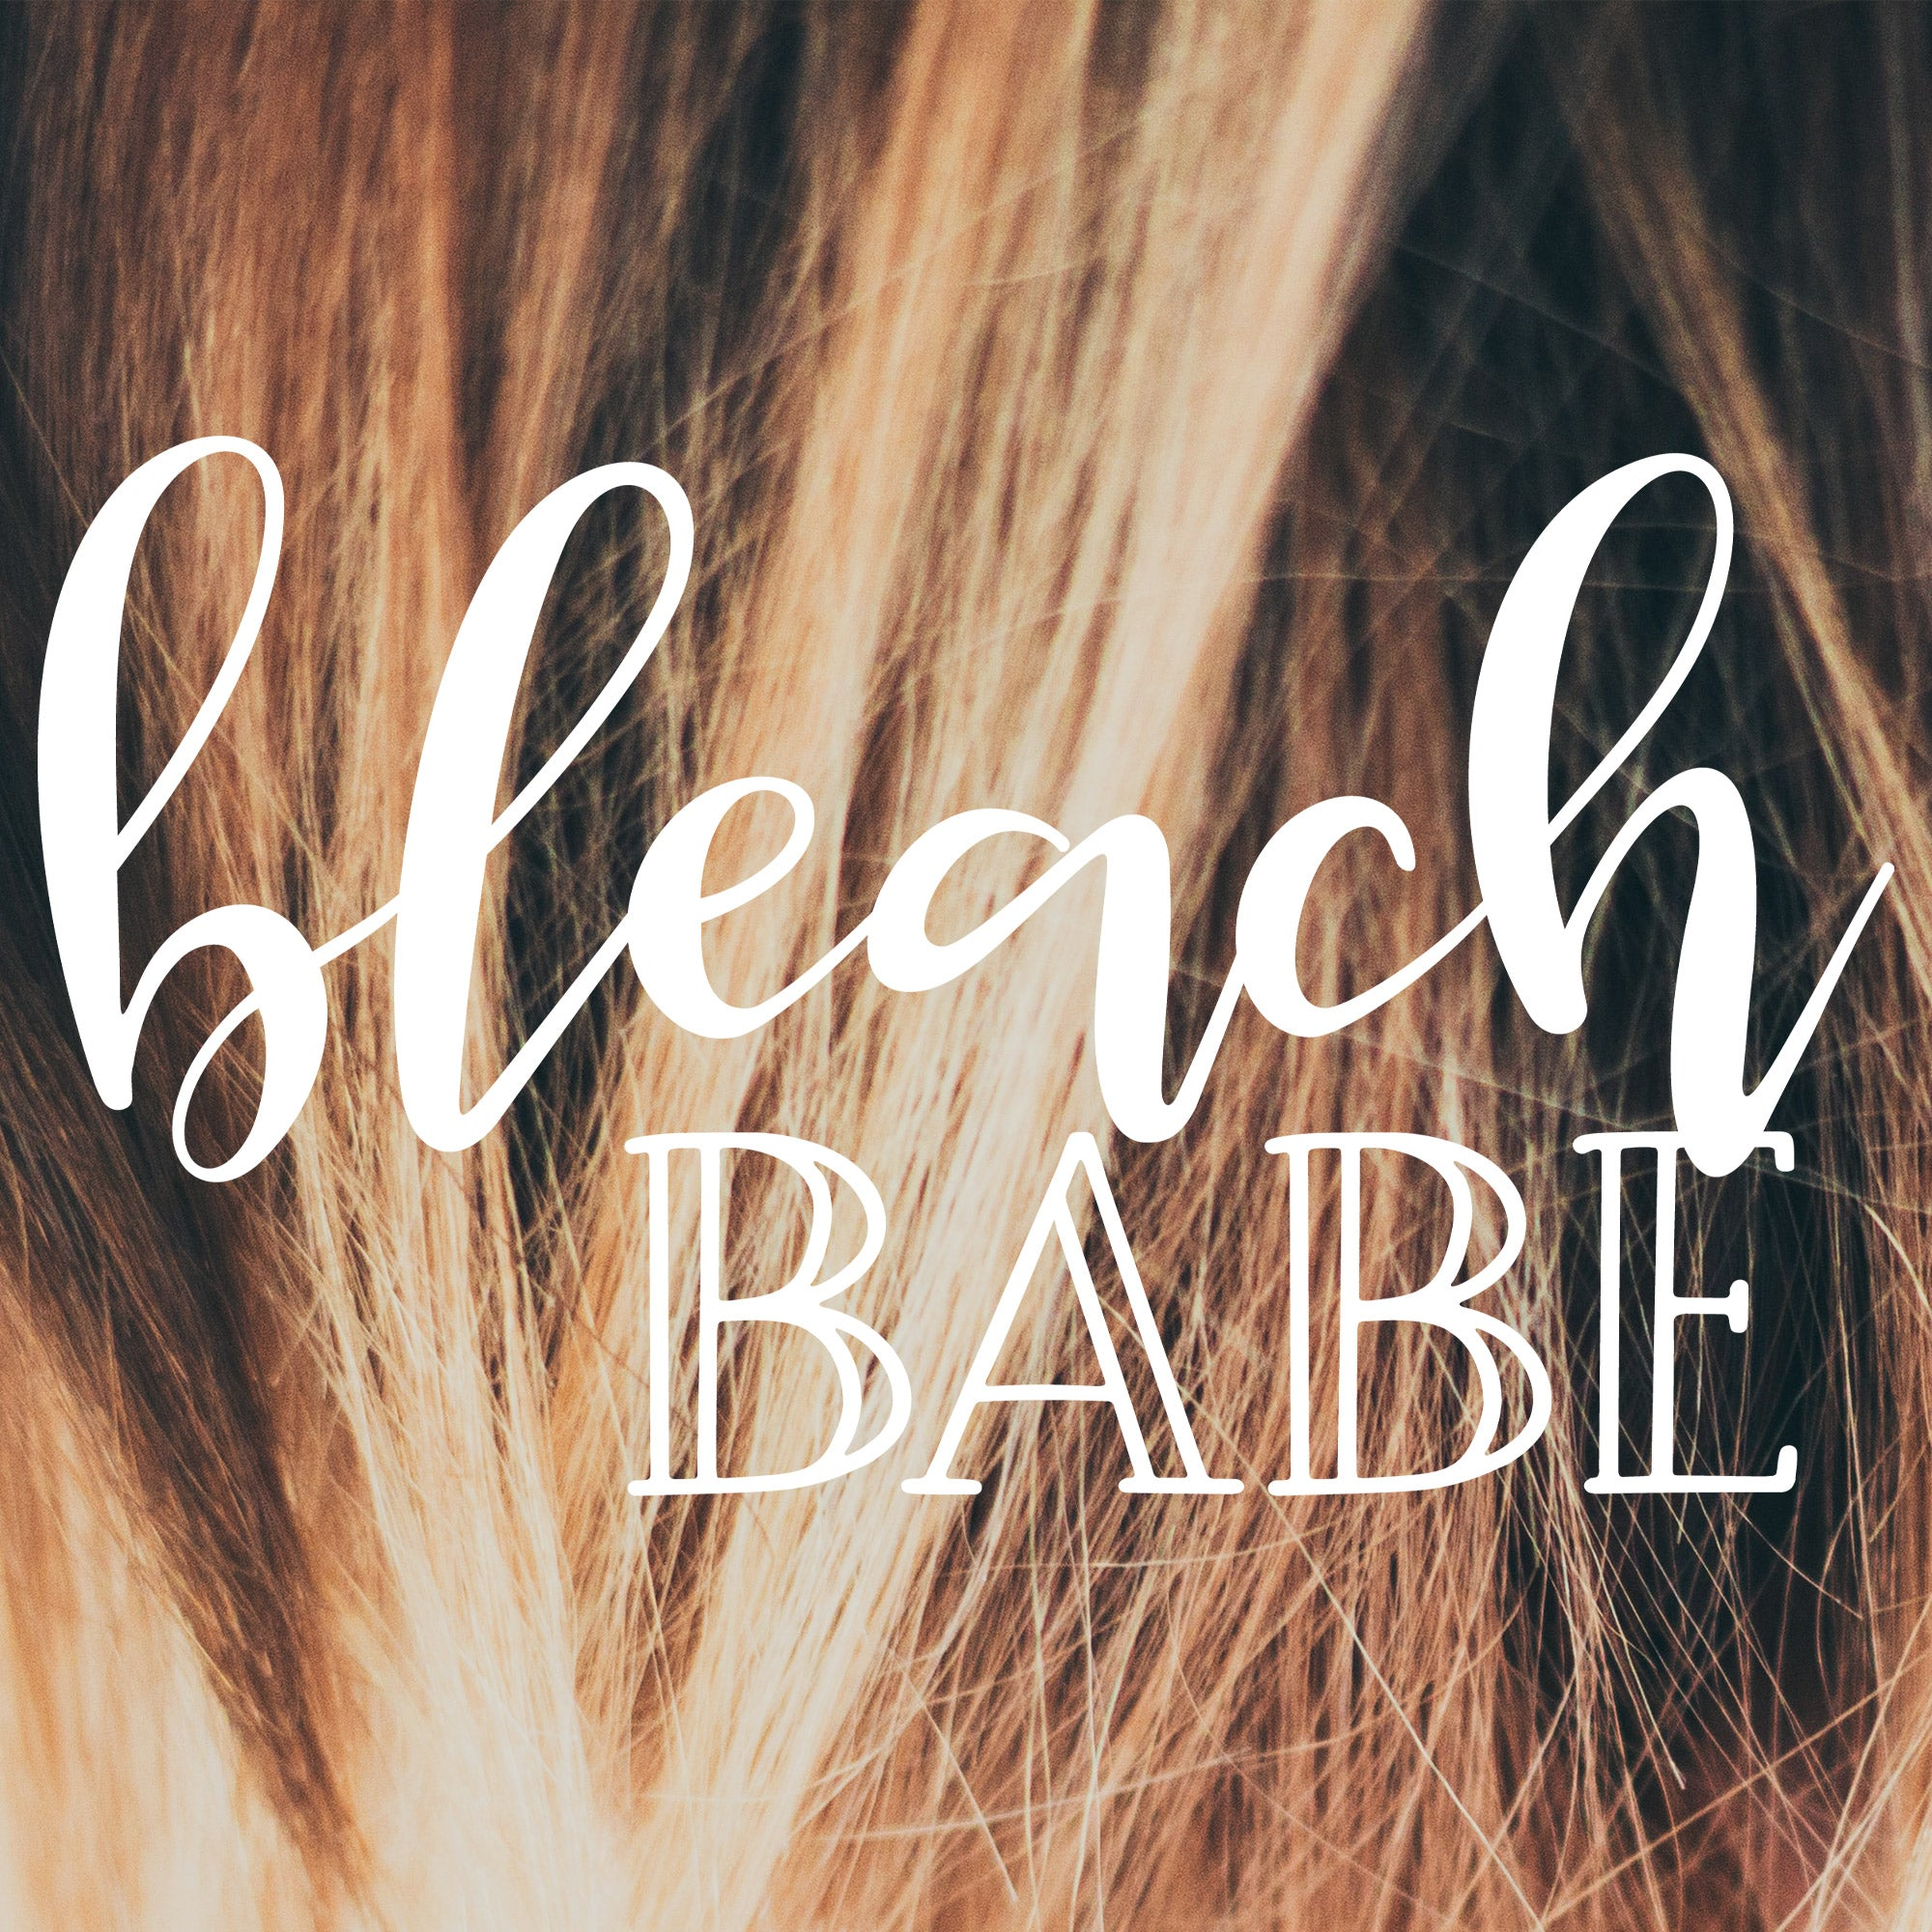 Bleach babe SVG design shown over a close up, blurred photo of hair